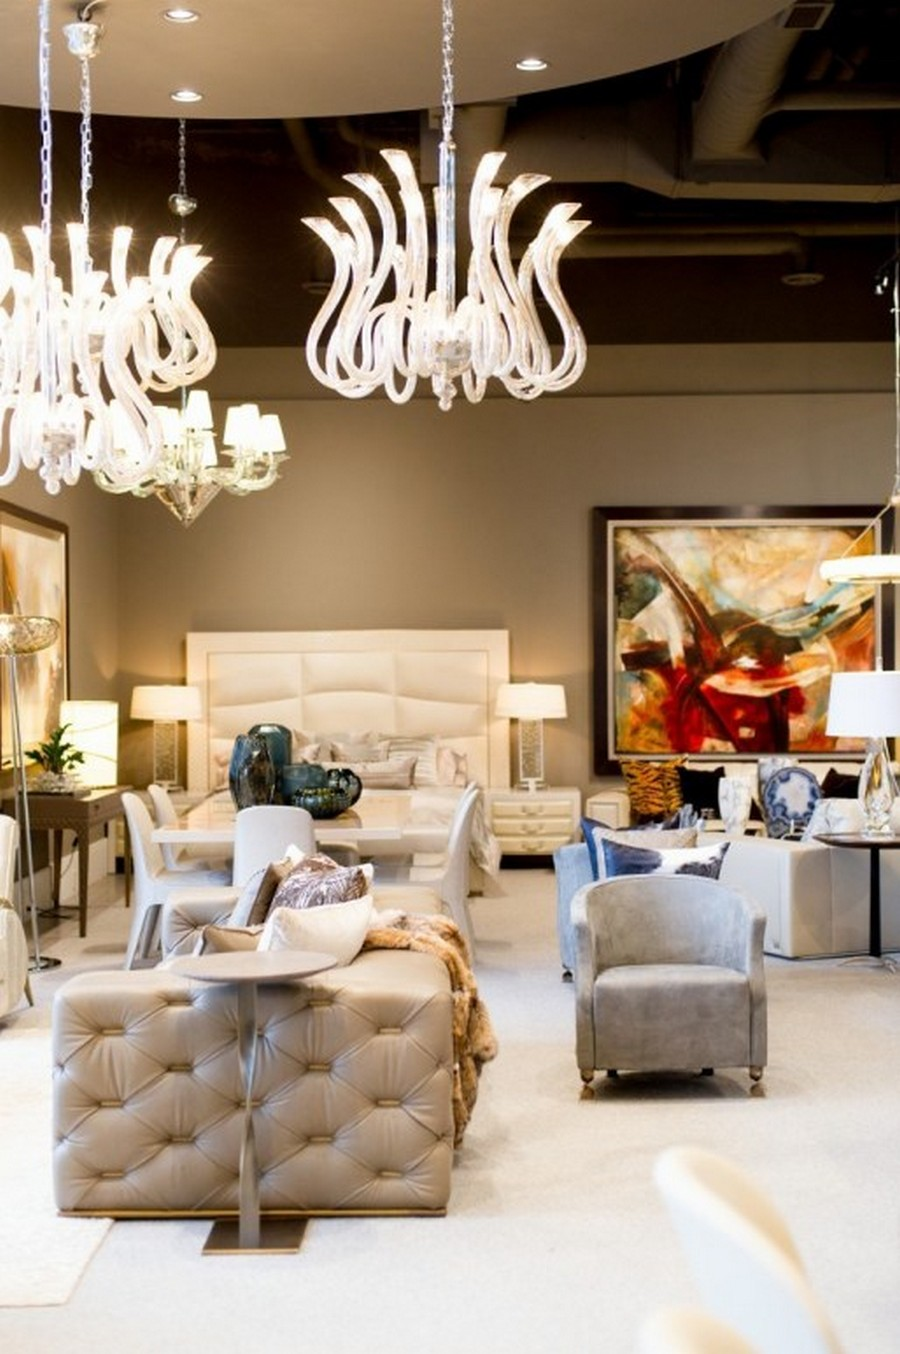 Lloyd Bruce Home Collections Is One Of The Best Canadian Showrooms [object object] Lloyd Bruce Home Collections Is One Of The Best Canadian Showrooms Lloyd Bruce Home Collections Is One Of The Best Canadian Showrooms 4